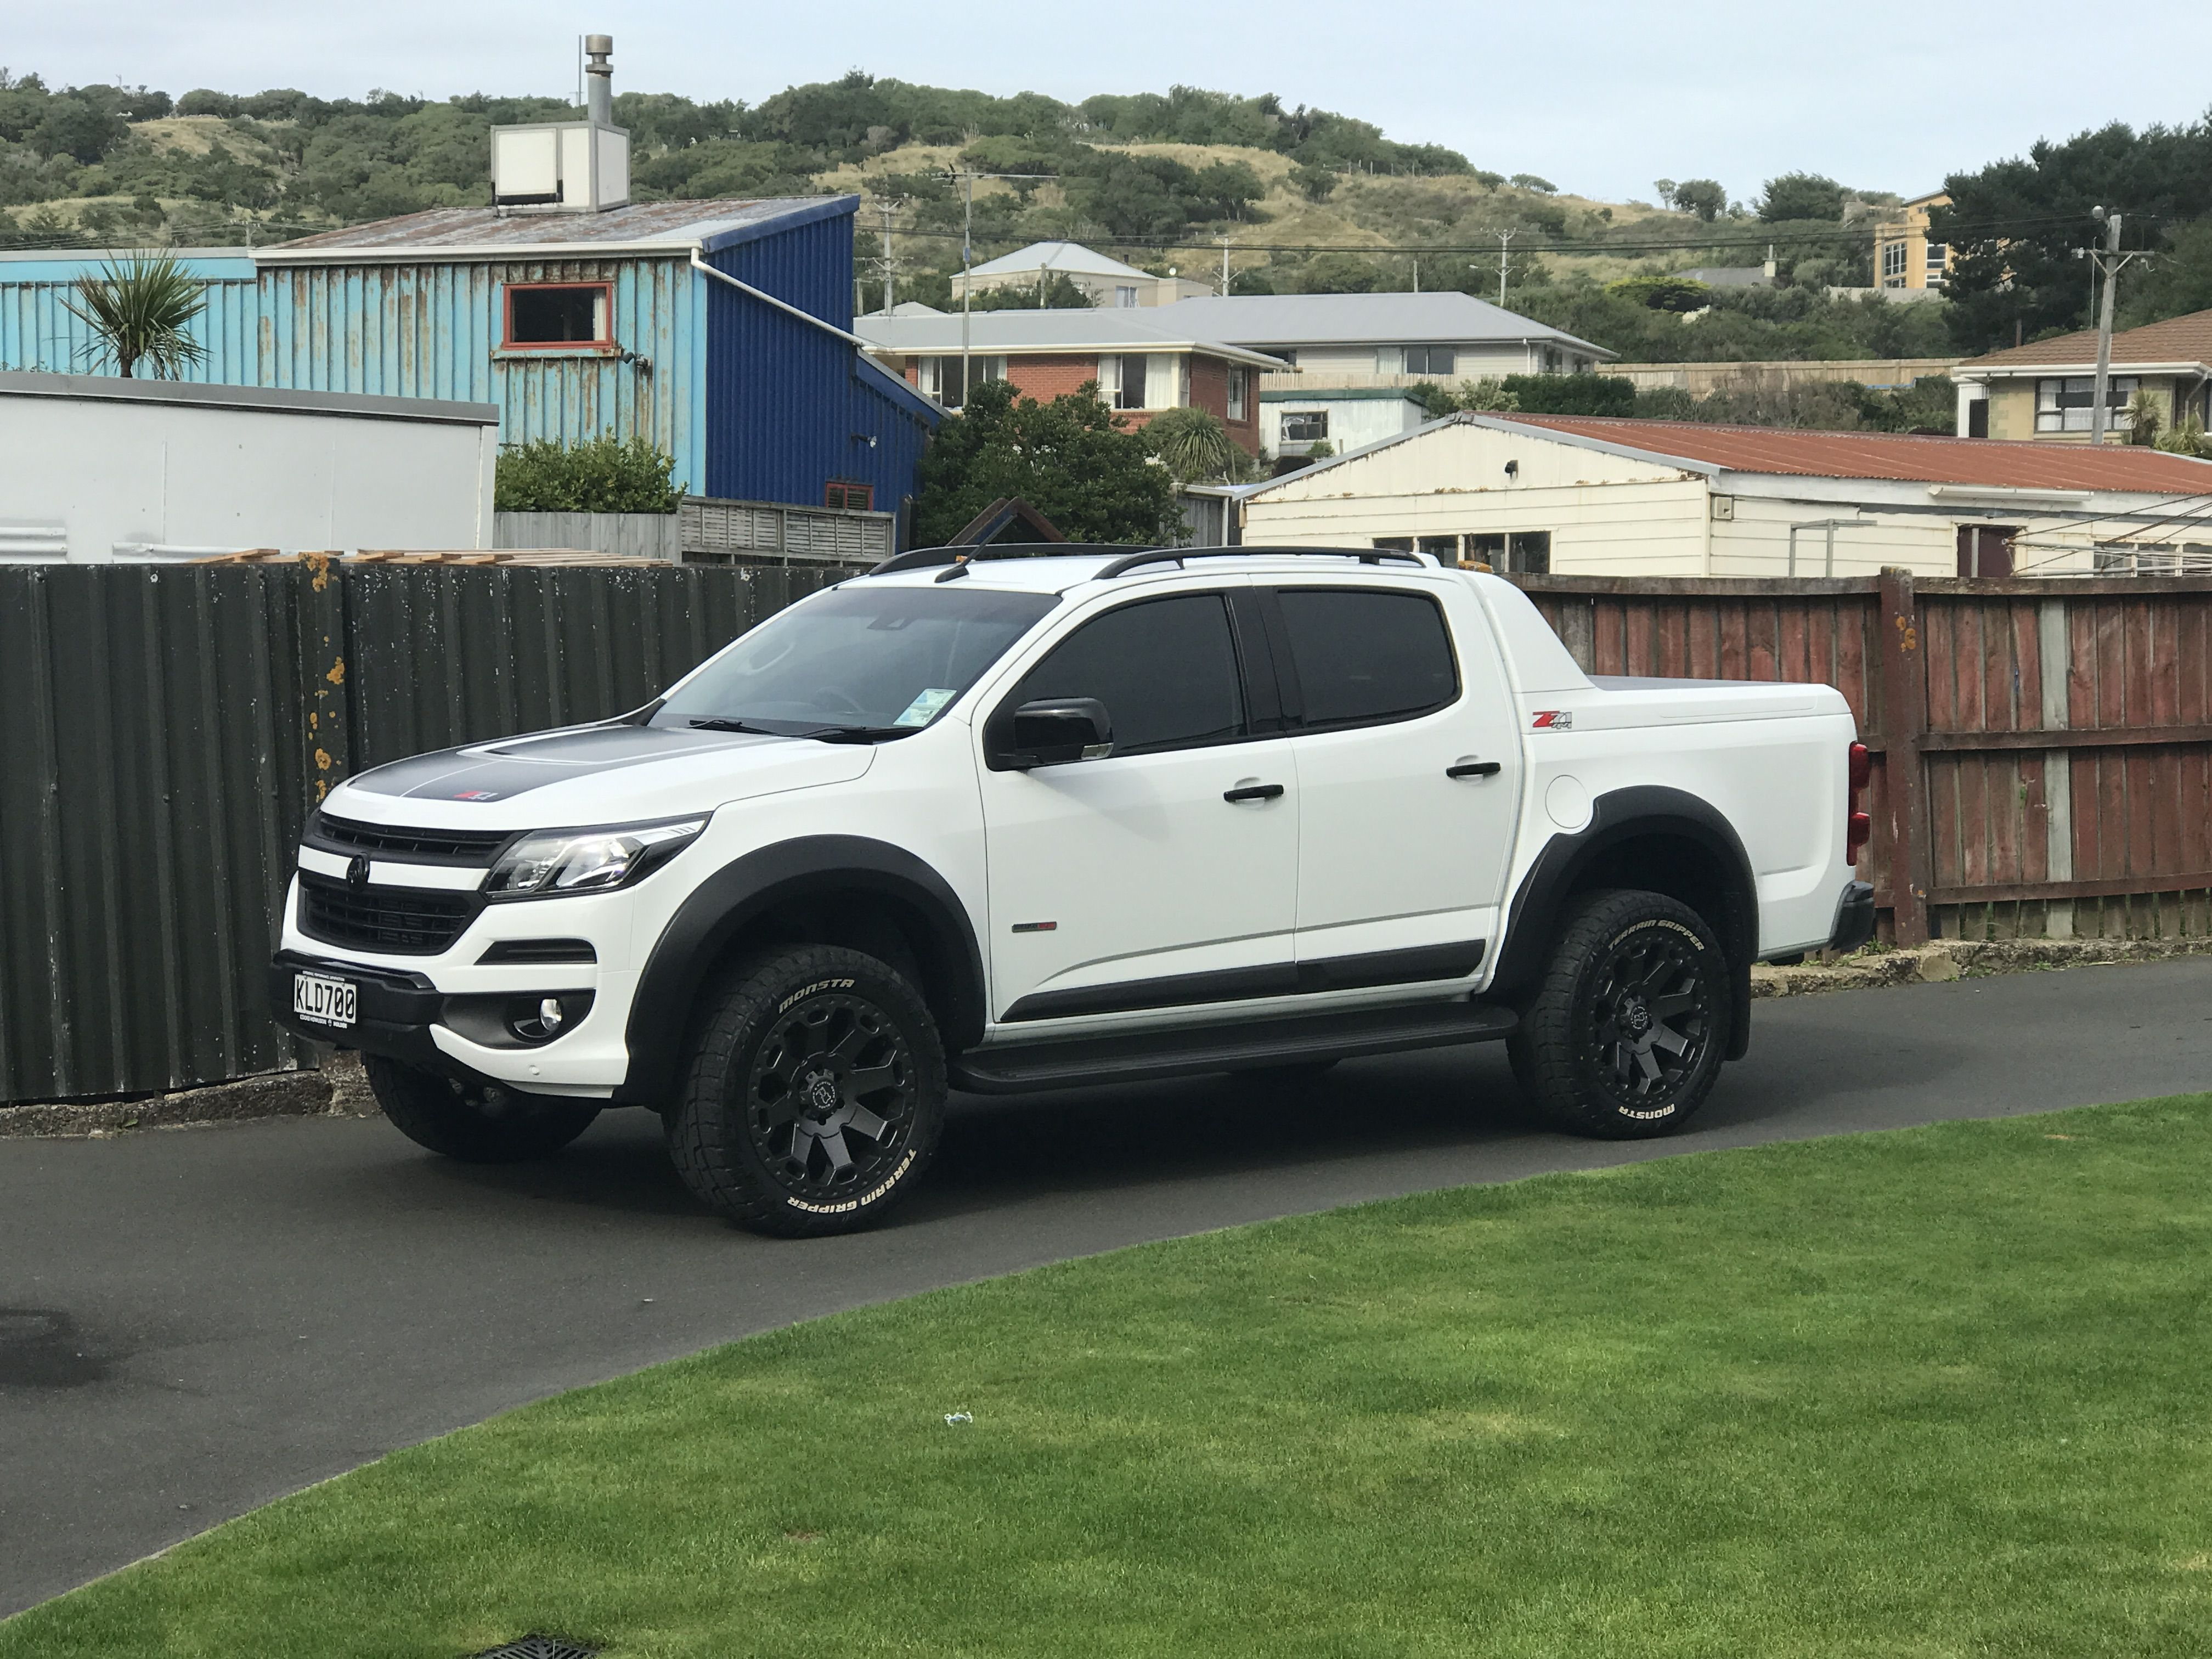 holden colorado 2017 2inch lift on 20 rims holden colorado z71 pinterest holden. Black Bedroom Furniture Sets. Home Design Ideas